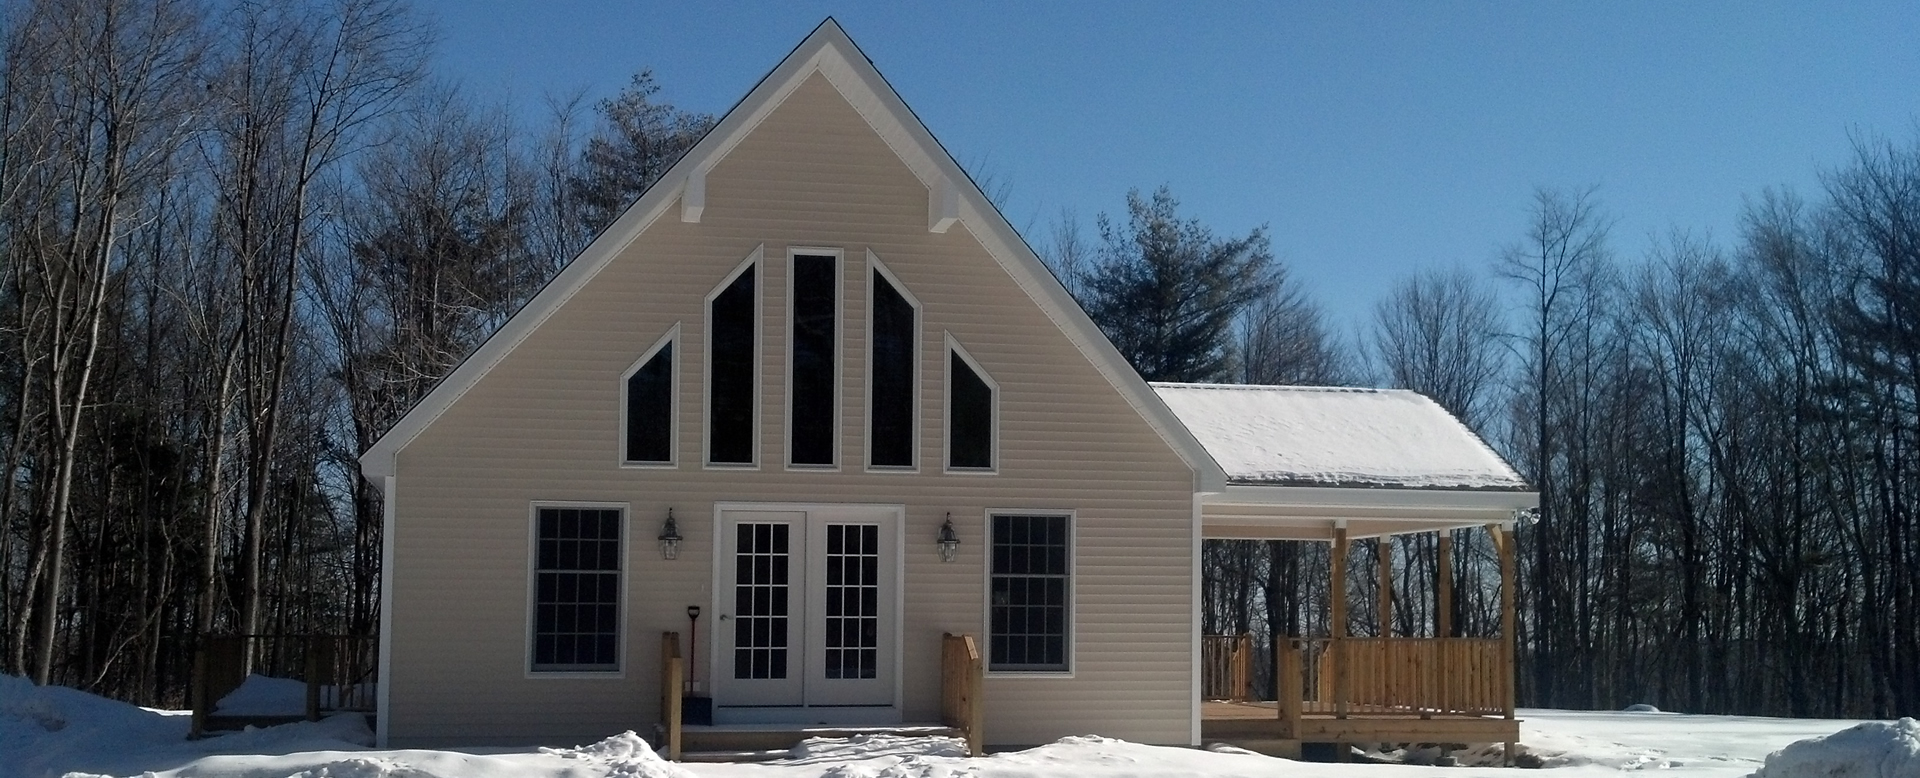 Fabulous New Modular Home Builder In Moultonborough Nh Lacewood Interior Design Ideas Inesswwsoteloinfo